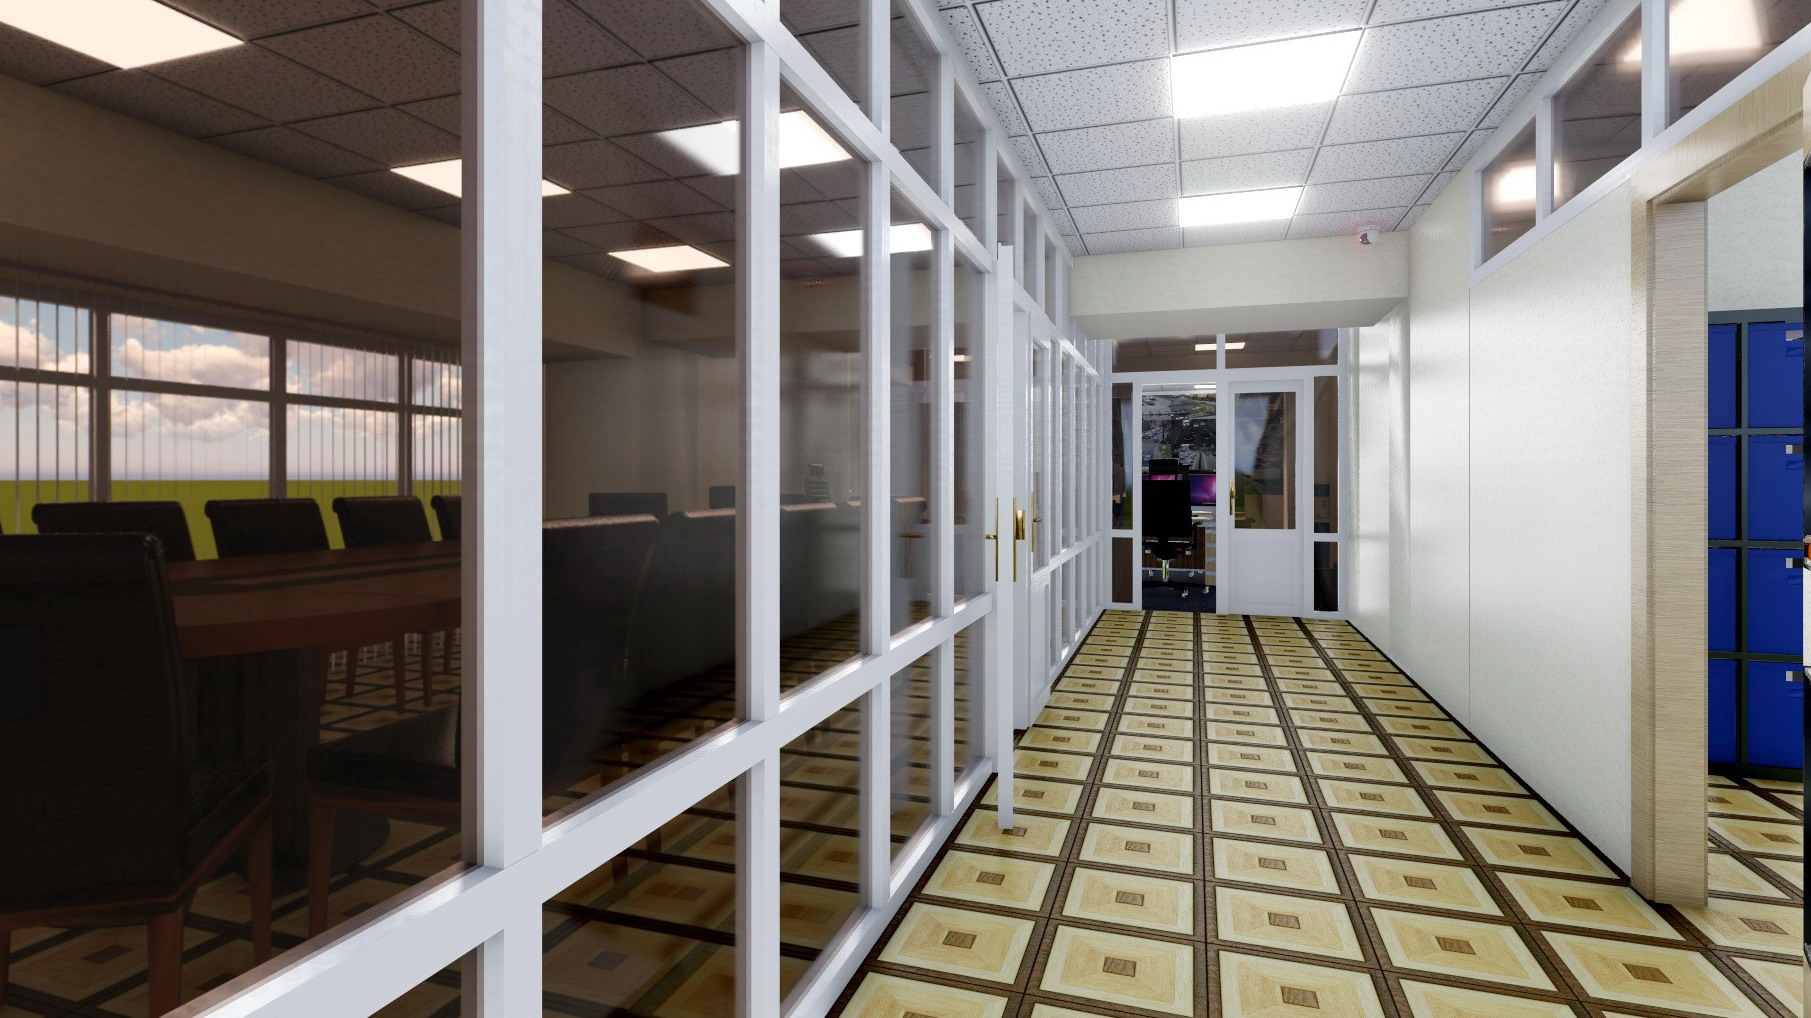 3D Presentation of the processing center, for funding approval. (Video attached) in Cinema 4d Other image